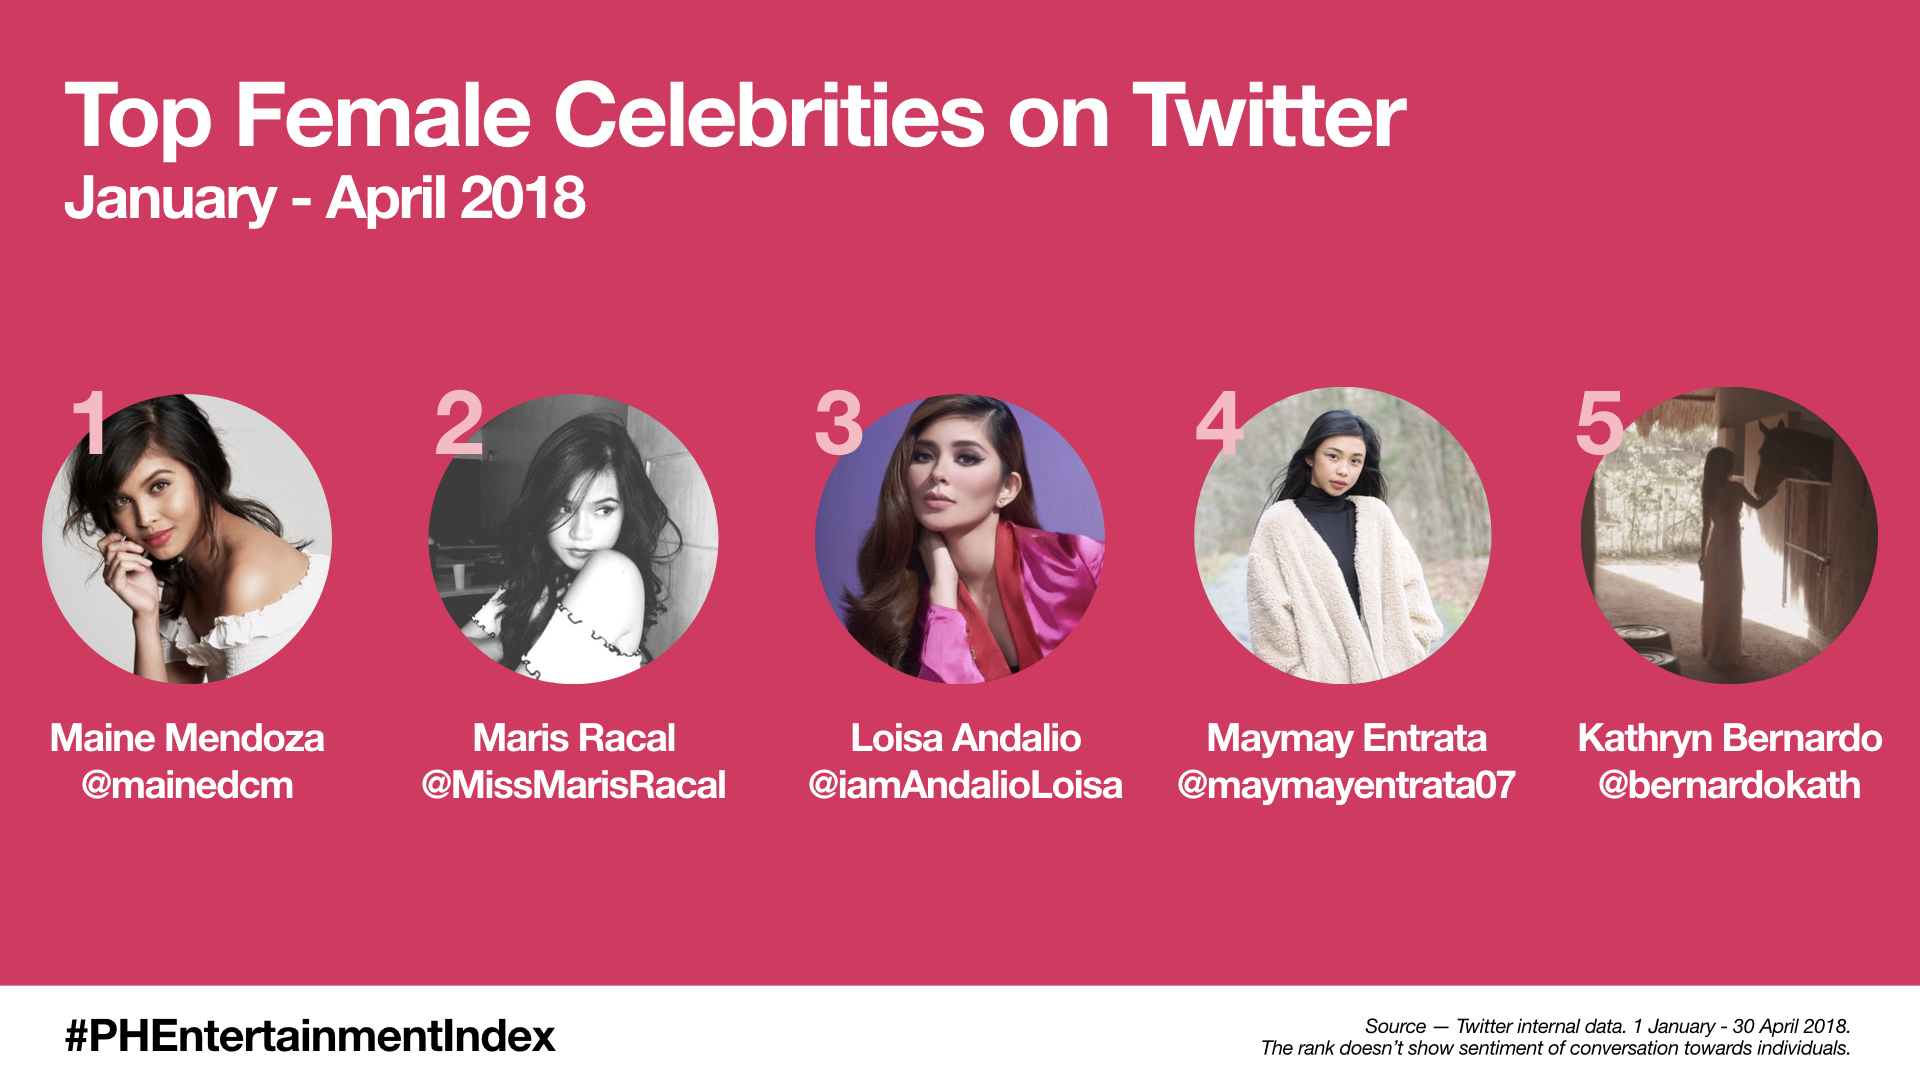 Top Female Celebrities on Twitter